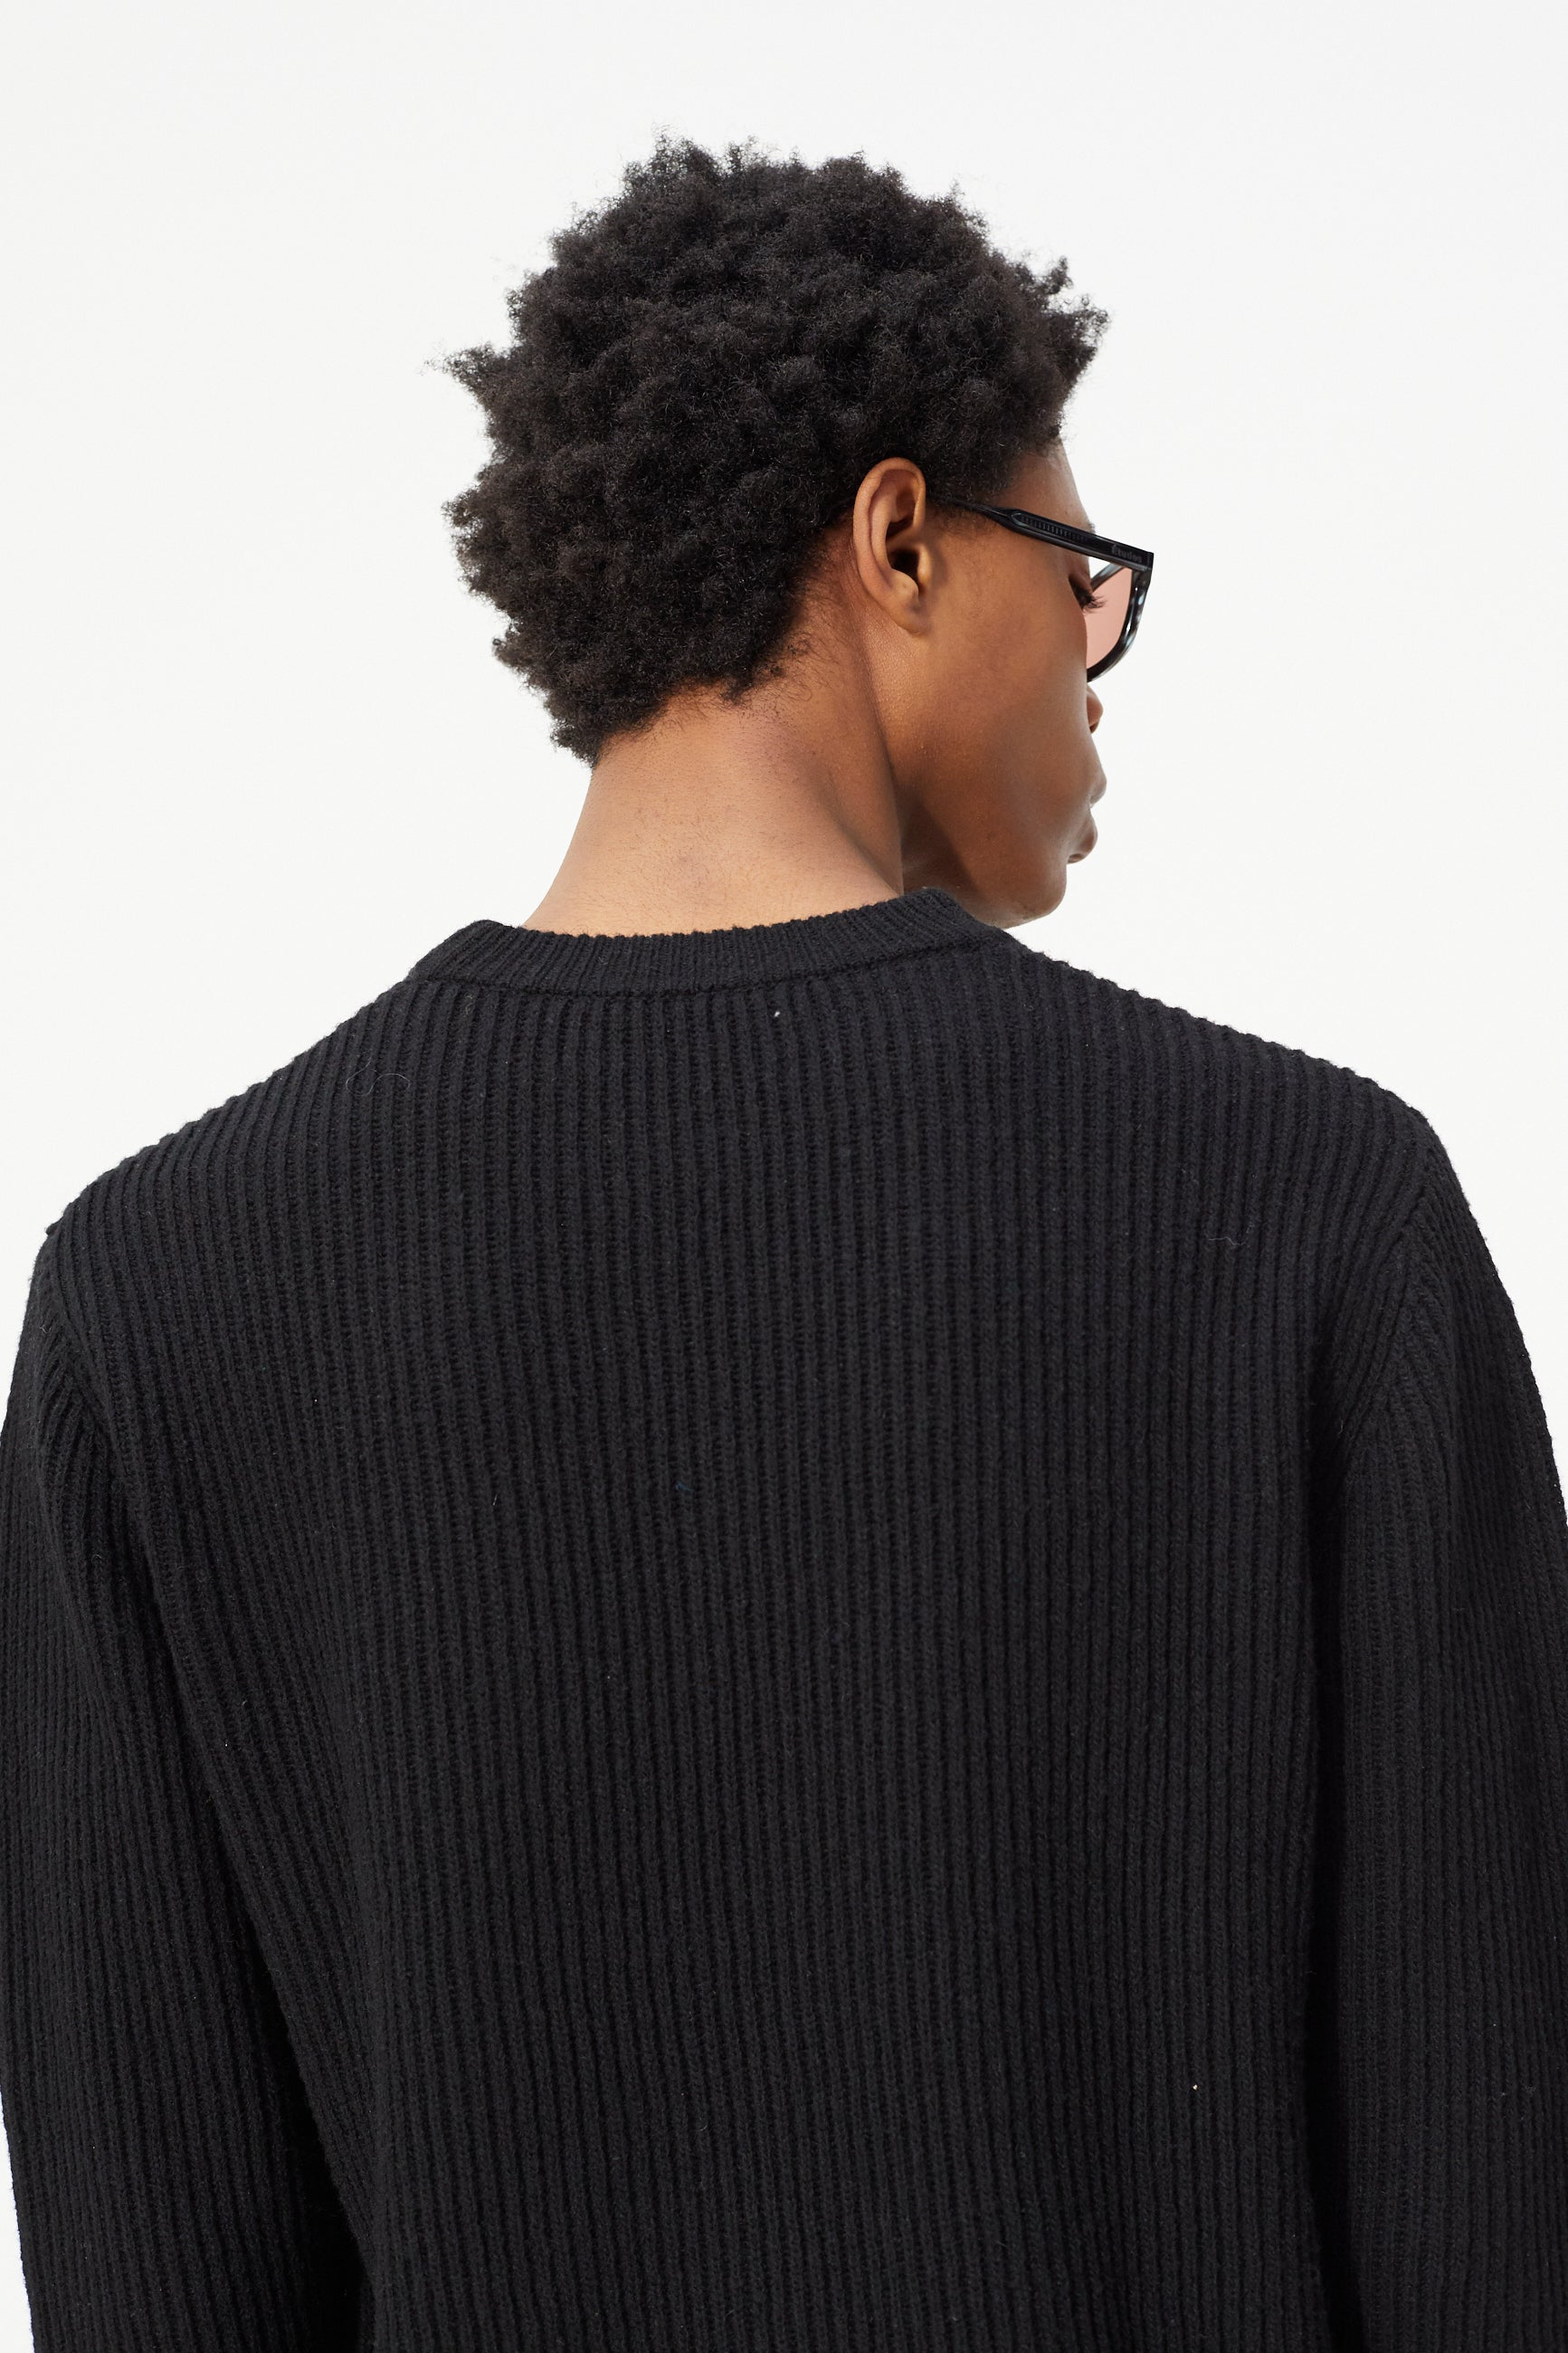 Études Boris Black Knit 6